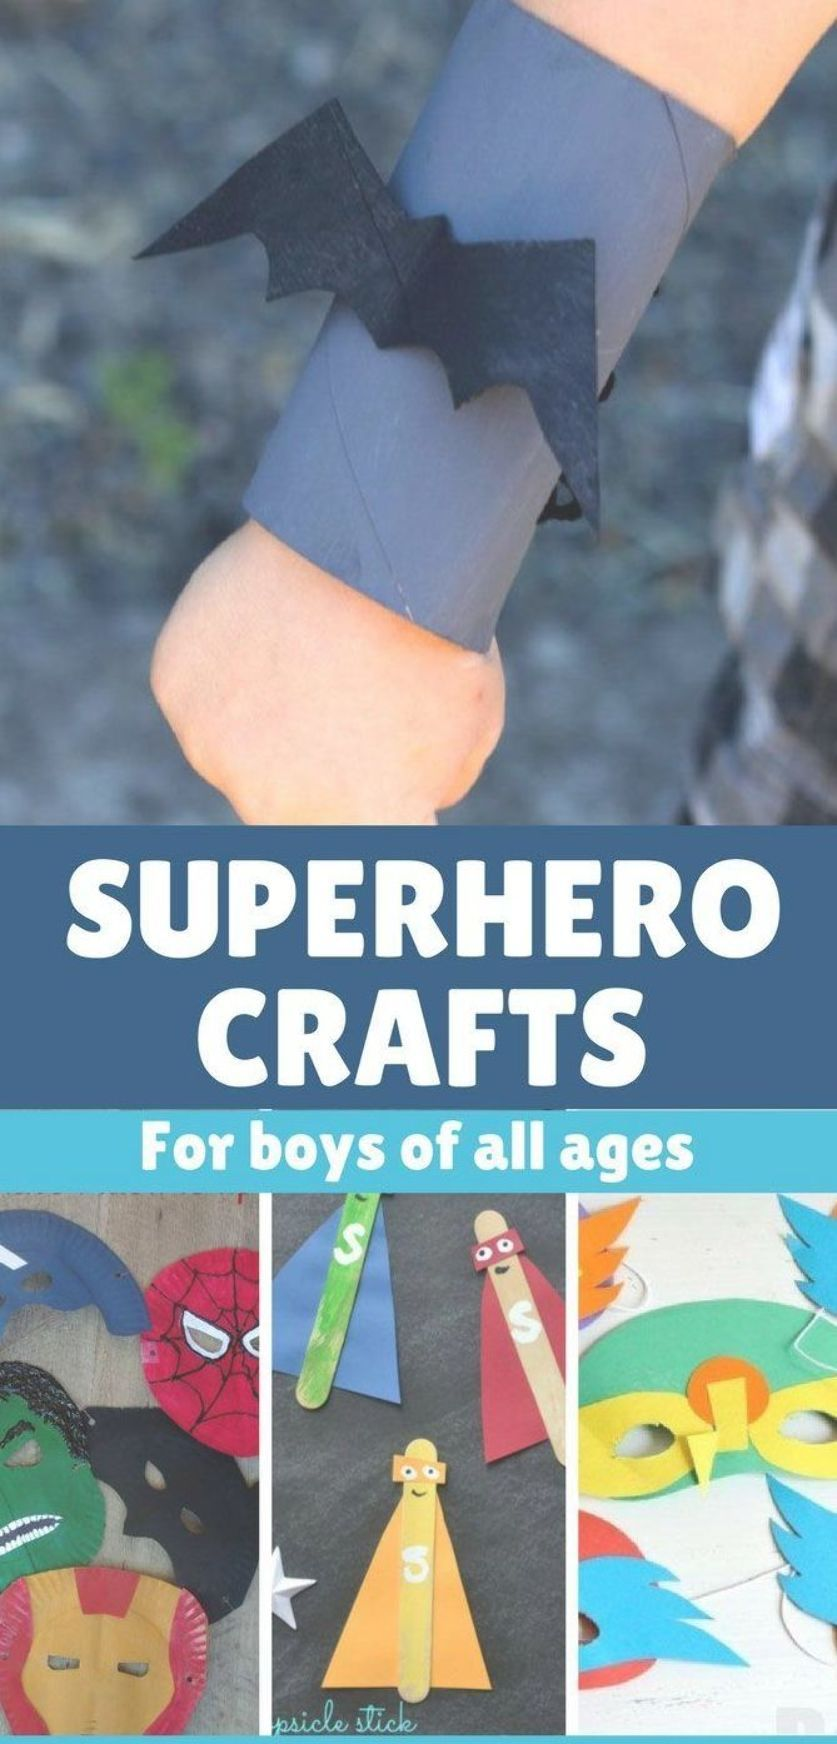 If you need superhero crafts, we have you covered!  #superheroes #superhero #crafts #superherocrafts #superherocrafts